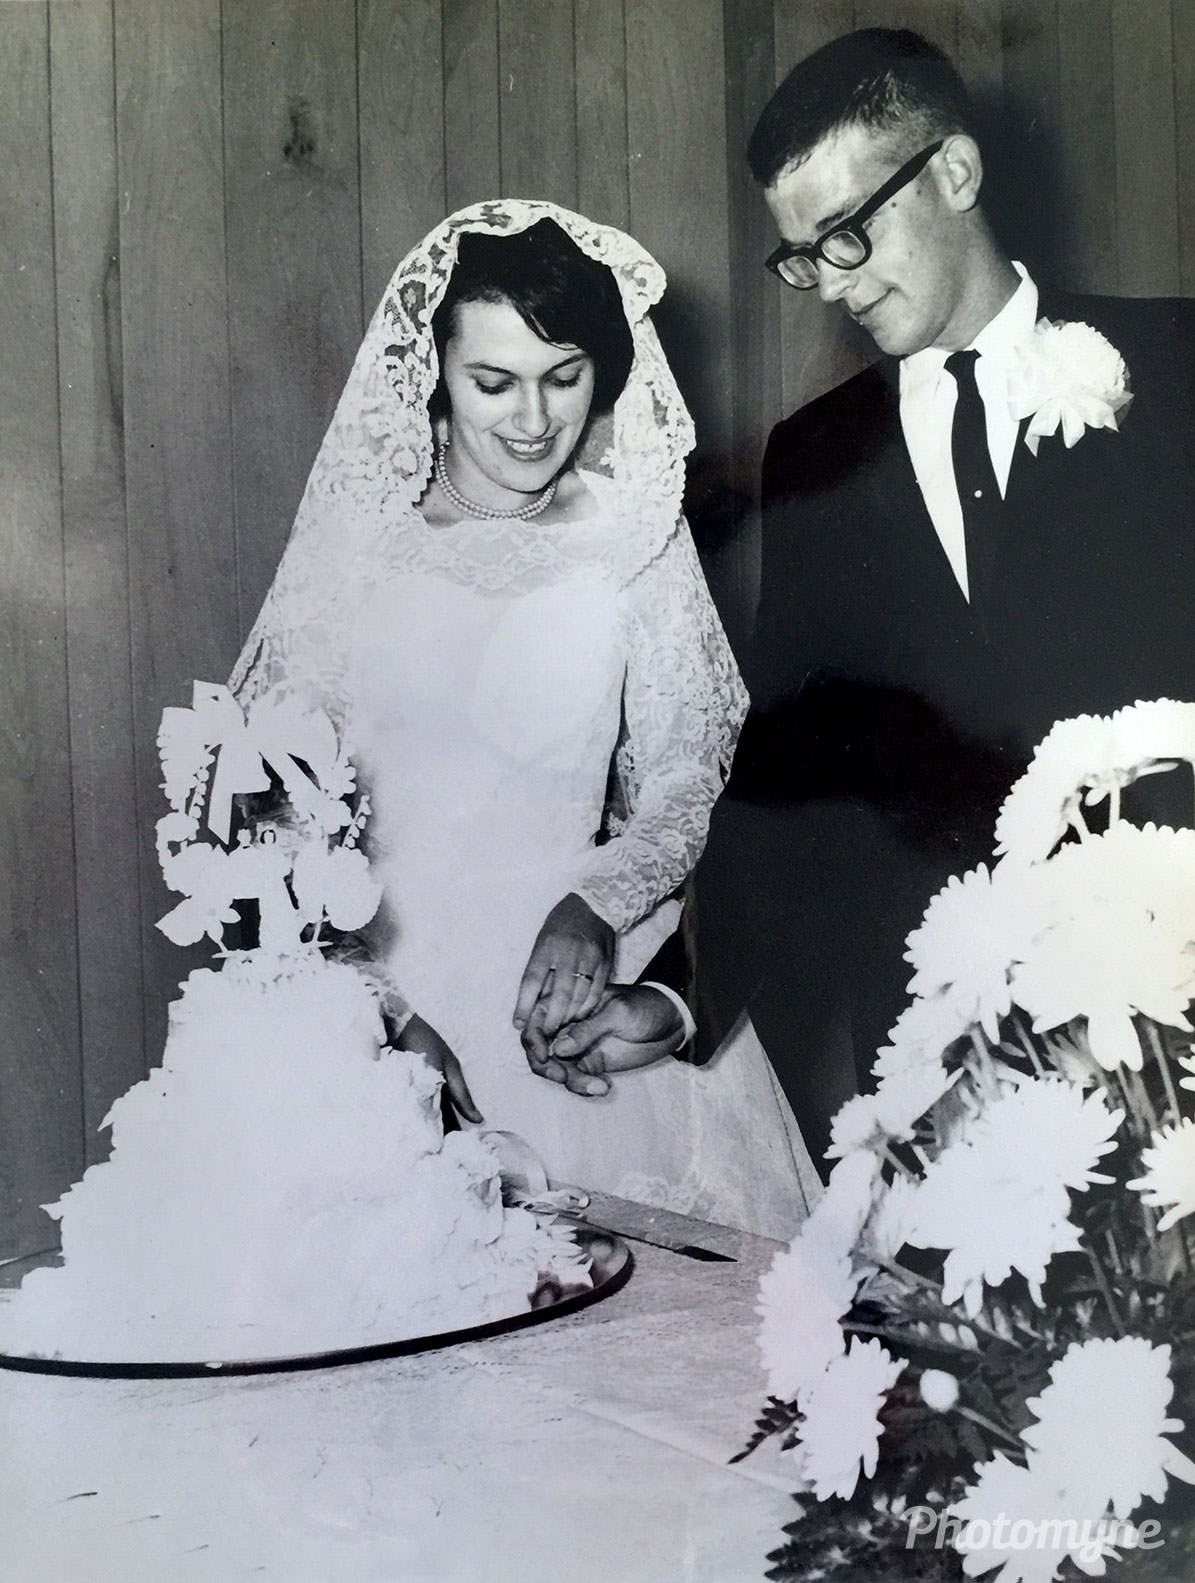 We were married June 1966 and will celebrate our 50th anniversary on the 26th, US, 1966